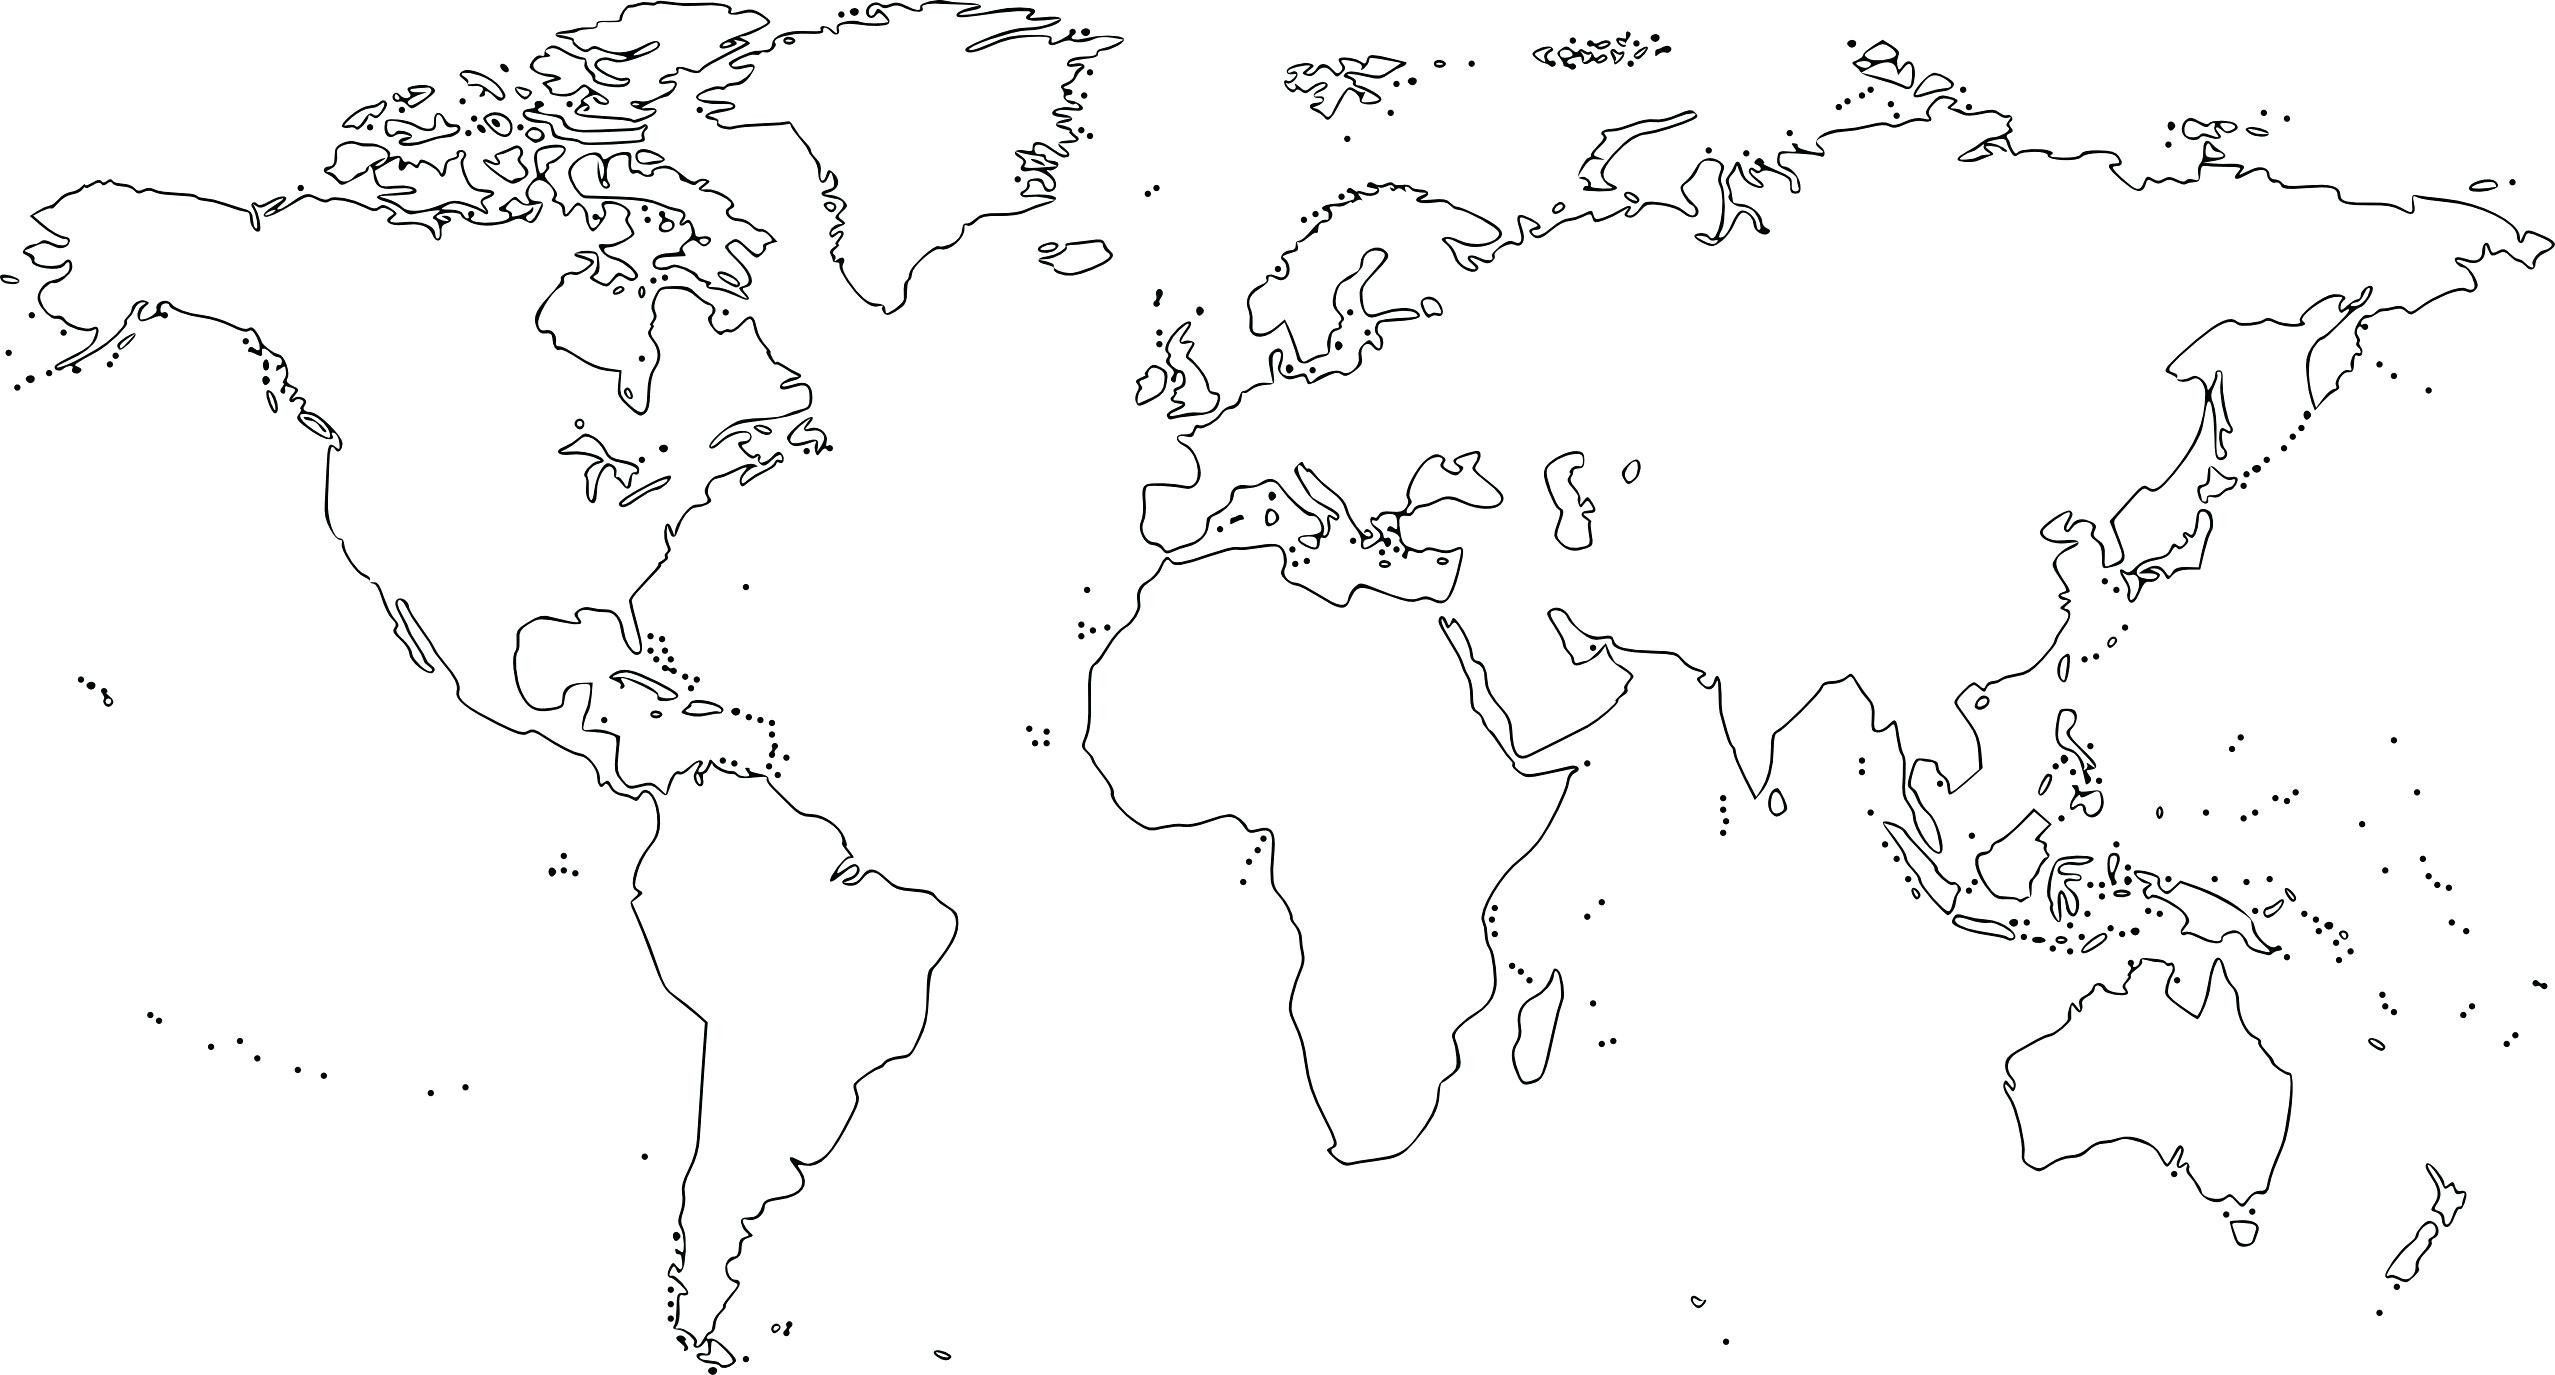 Described 7 Continents Of The World Pdf World Map Outline With